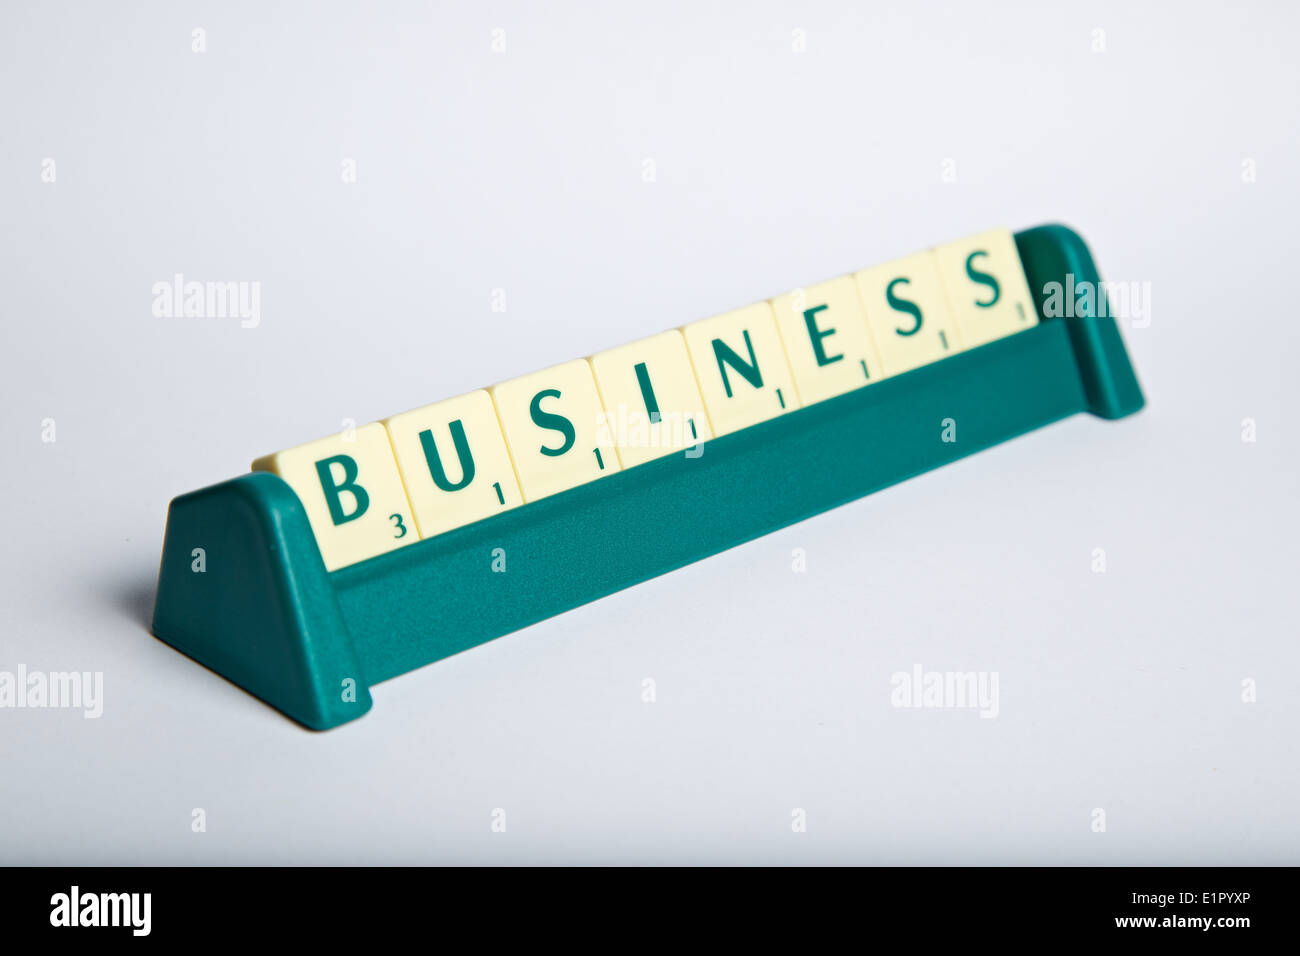 the word business in scrabble letters on a letter rack stock photo